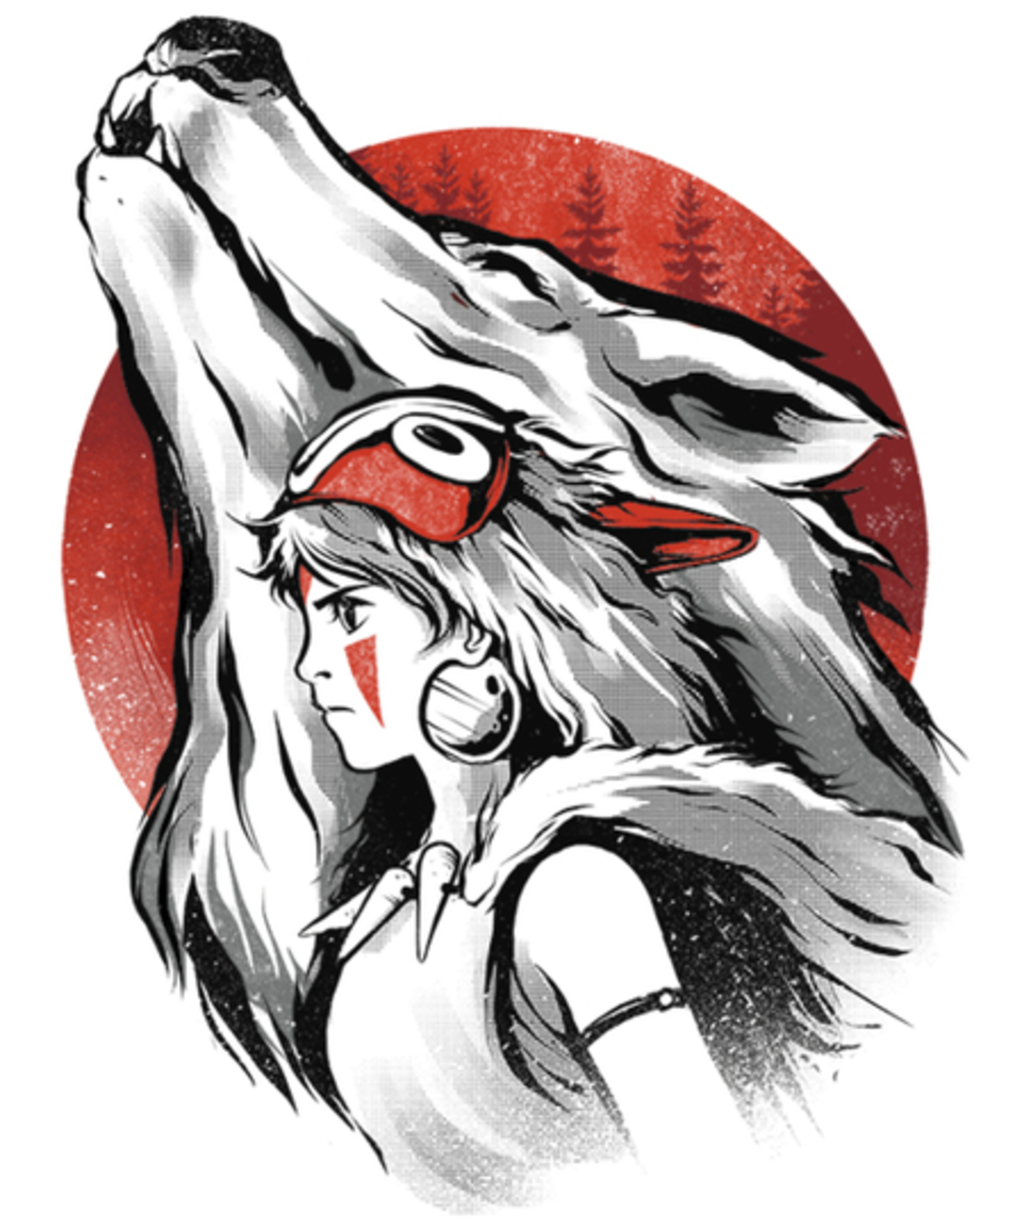 Qwertee: The girl and the wolf